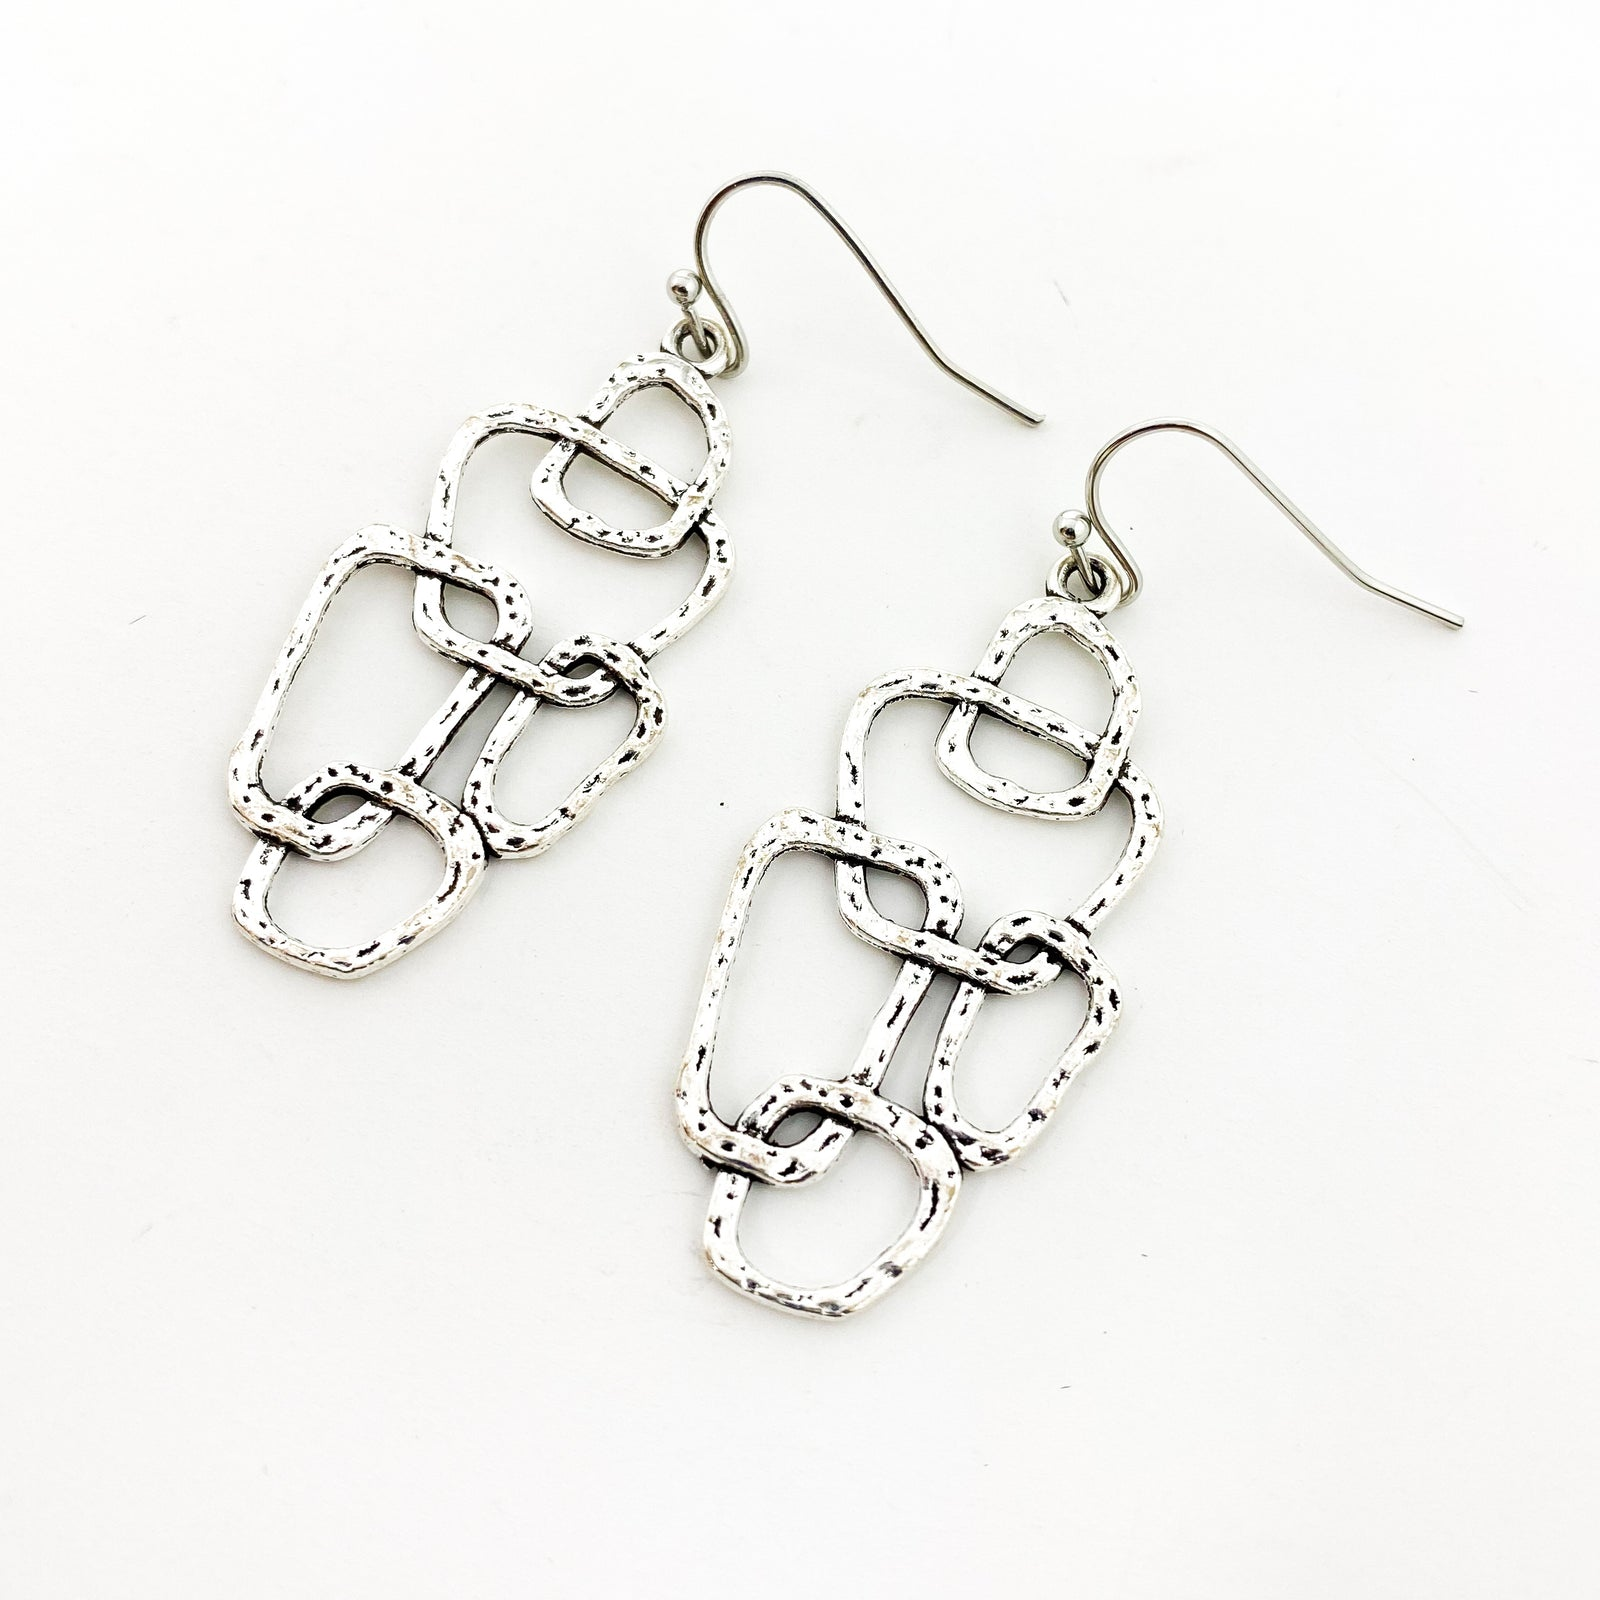 SILVER ARCHITECTURE EARRINGS